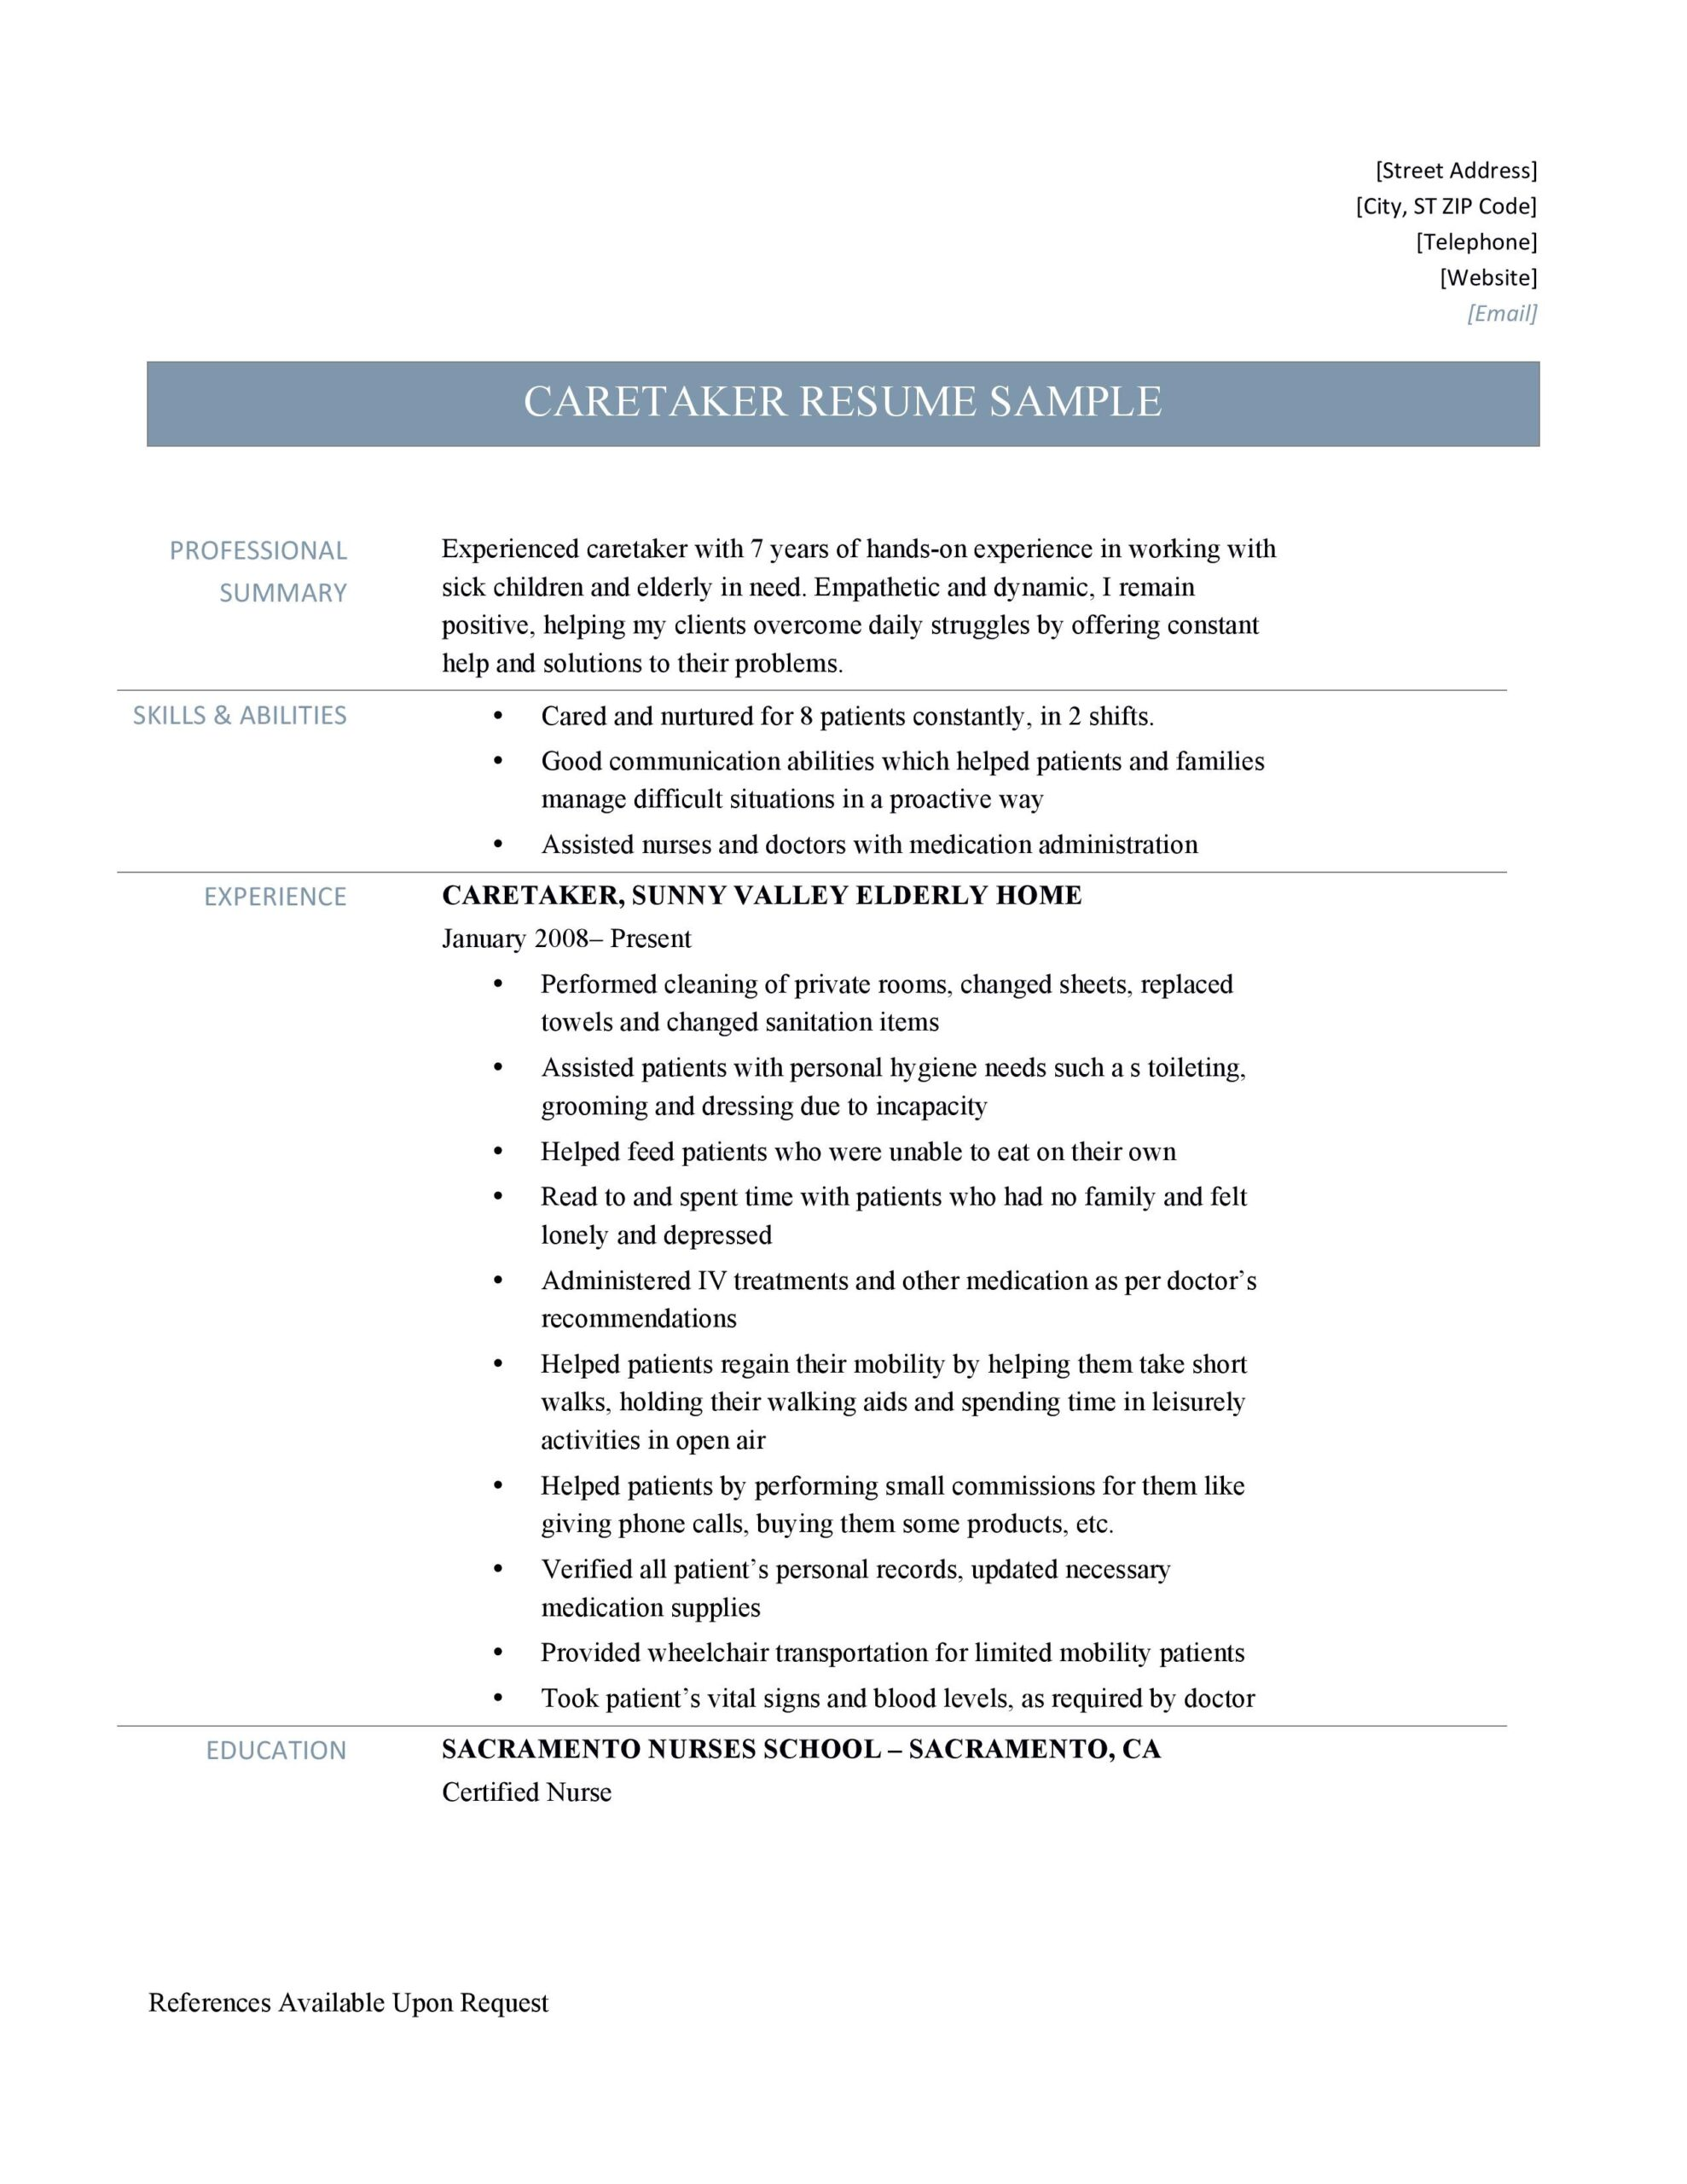 caretaker resume samples tips and template by builders medium sample jatx6eerb 9sudde Resume Caretaker Resume Sample